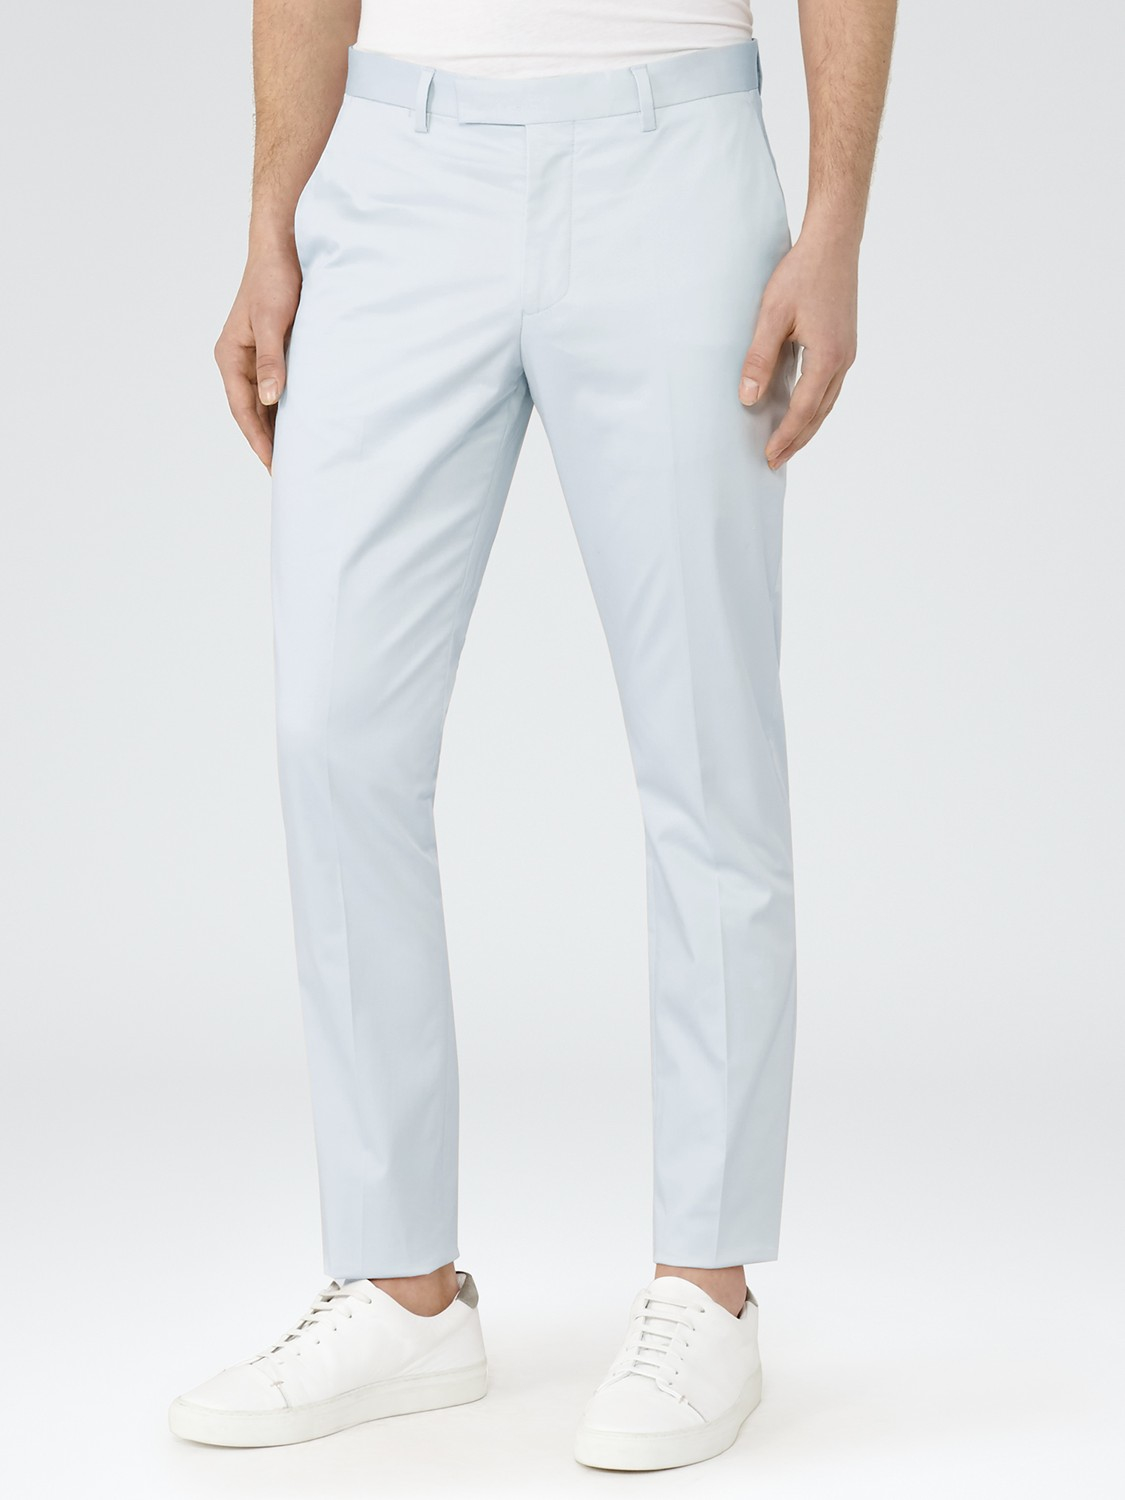 Reiss Cotton Boulevard Twill Slim Fit Trousers in Ice Blue (Blue) for Men